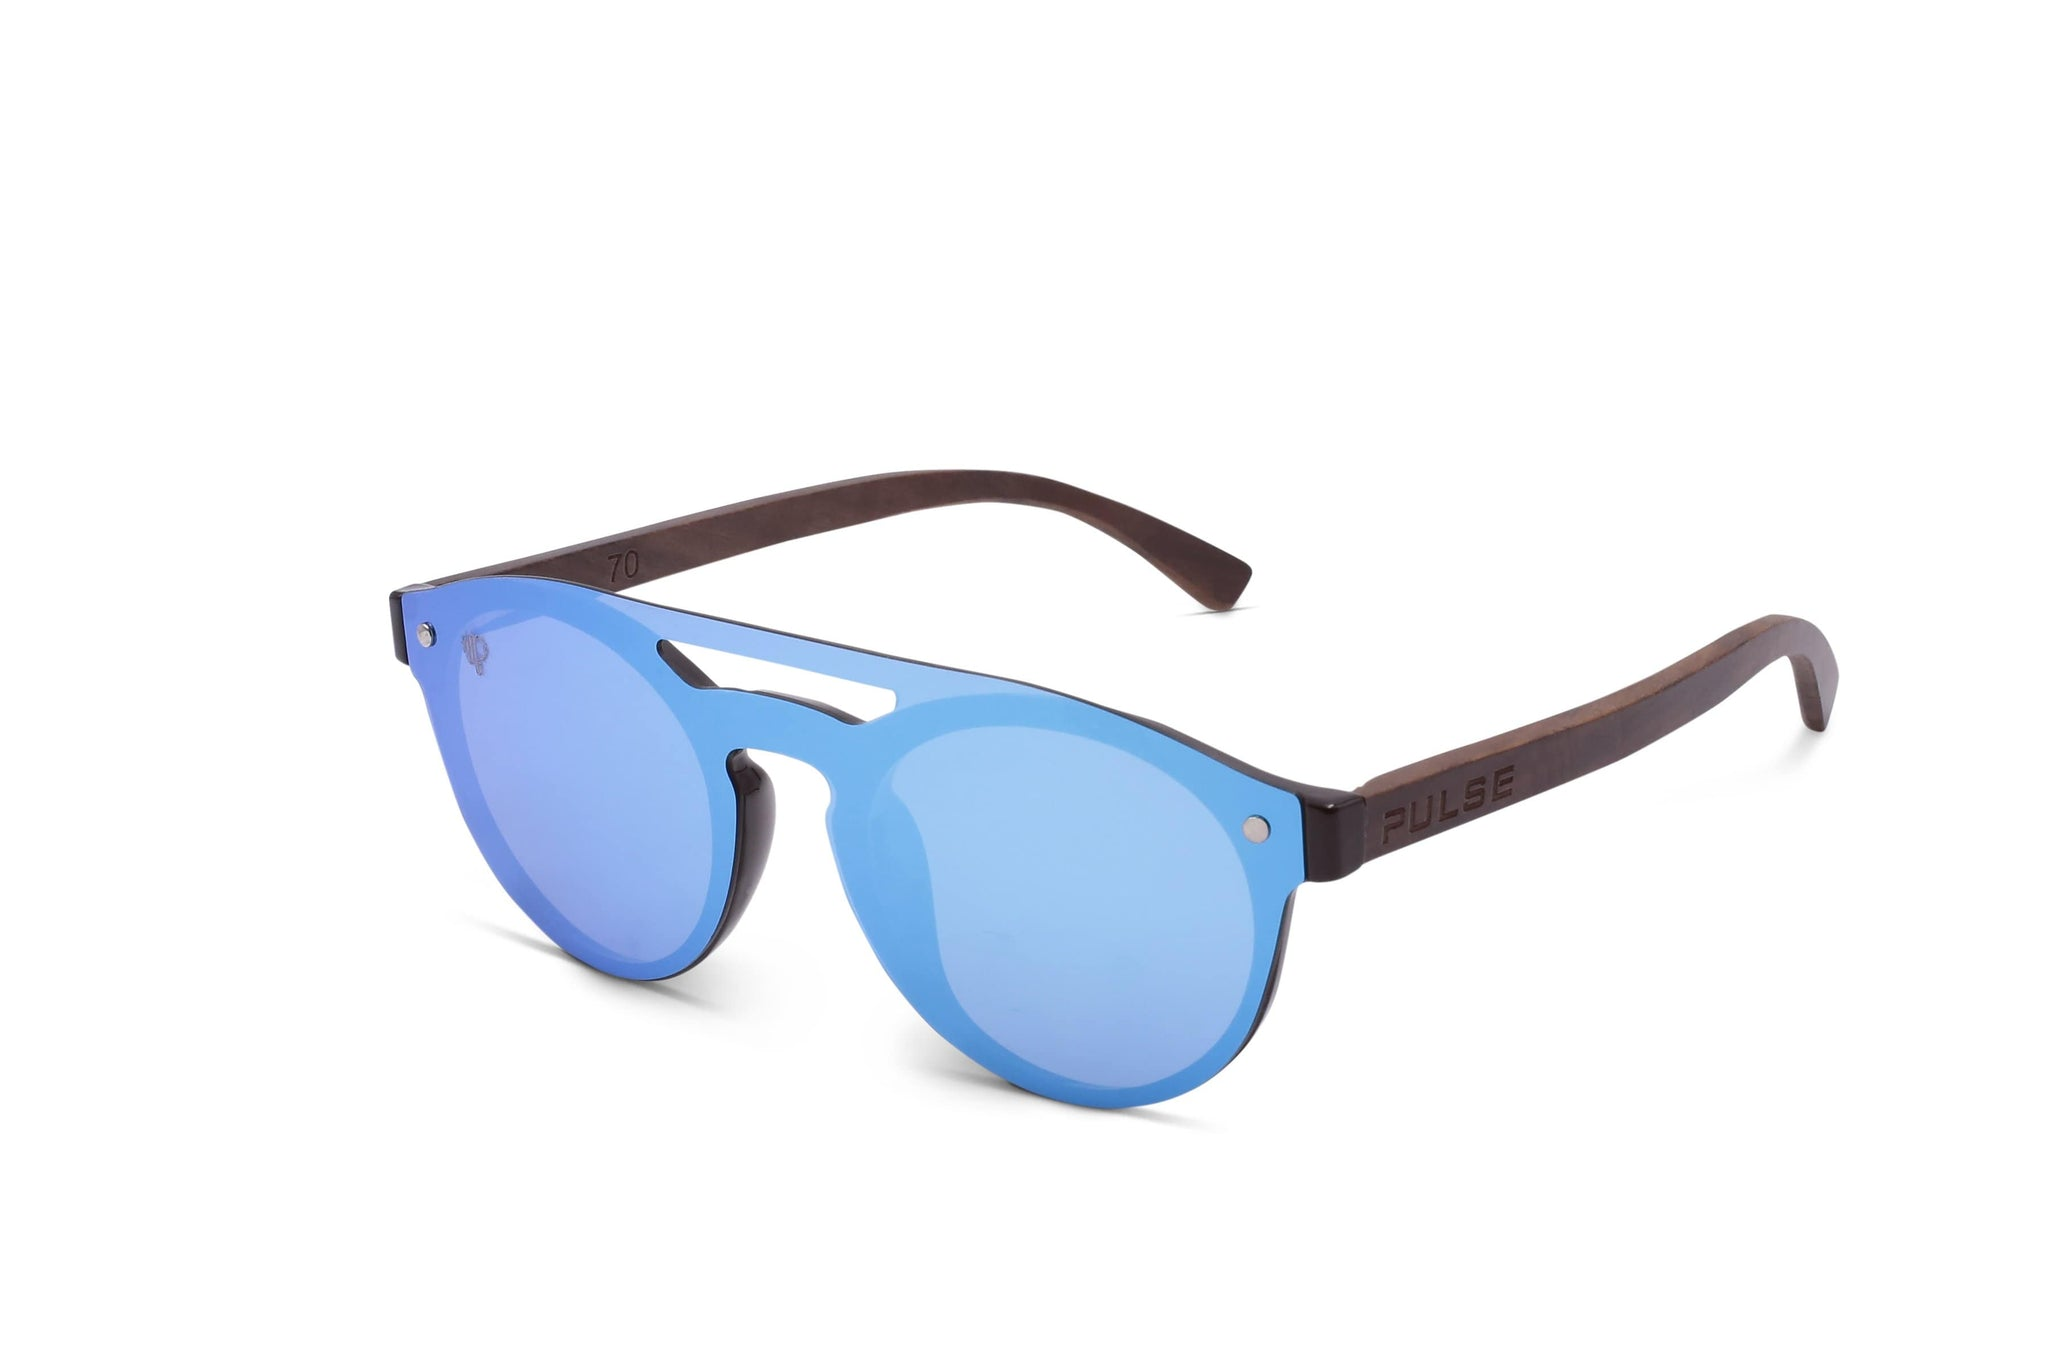 PULSE SUNGLASSES DOLPHIN Buy Best Round Glasses with any Outfit | DOLPHIN